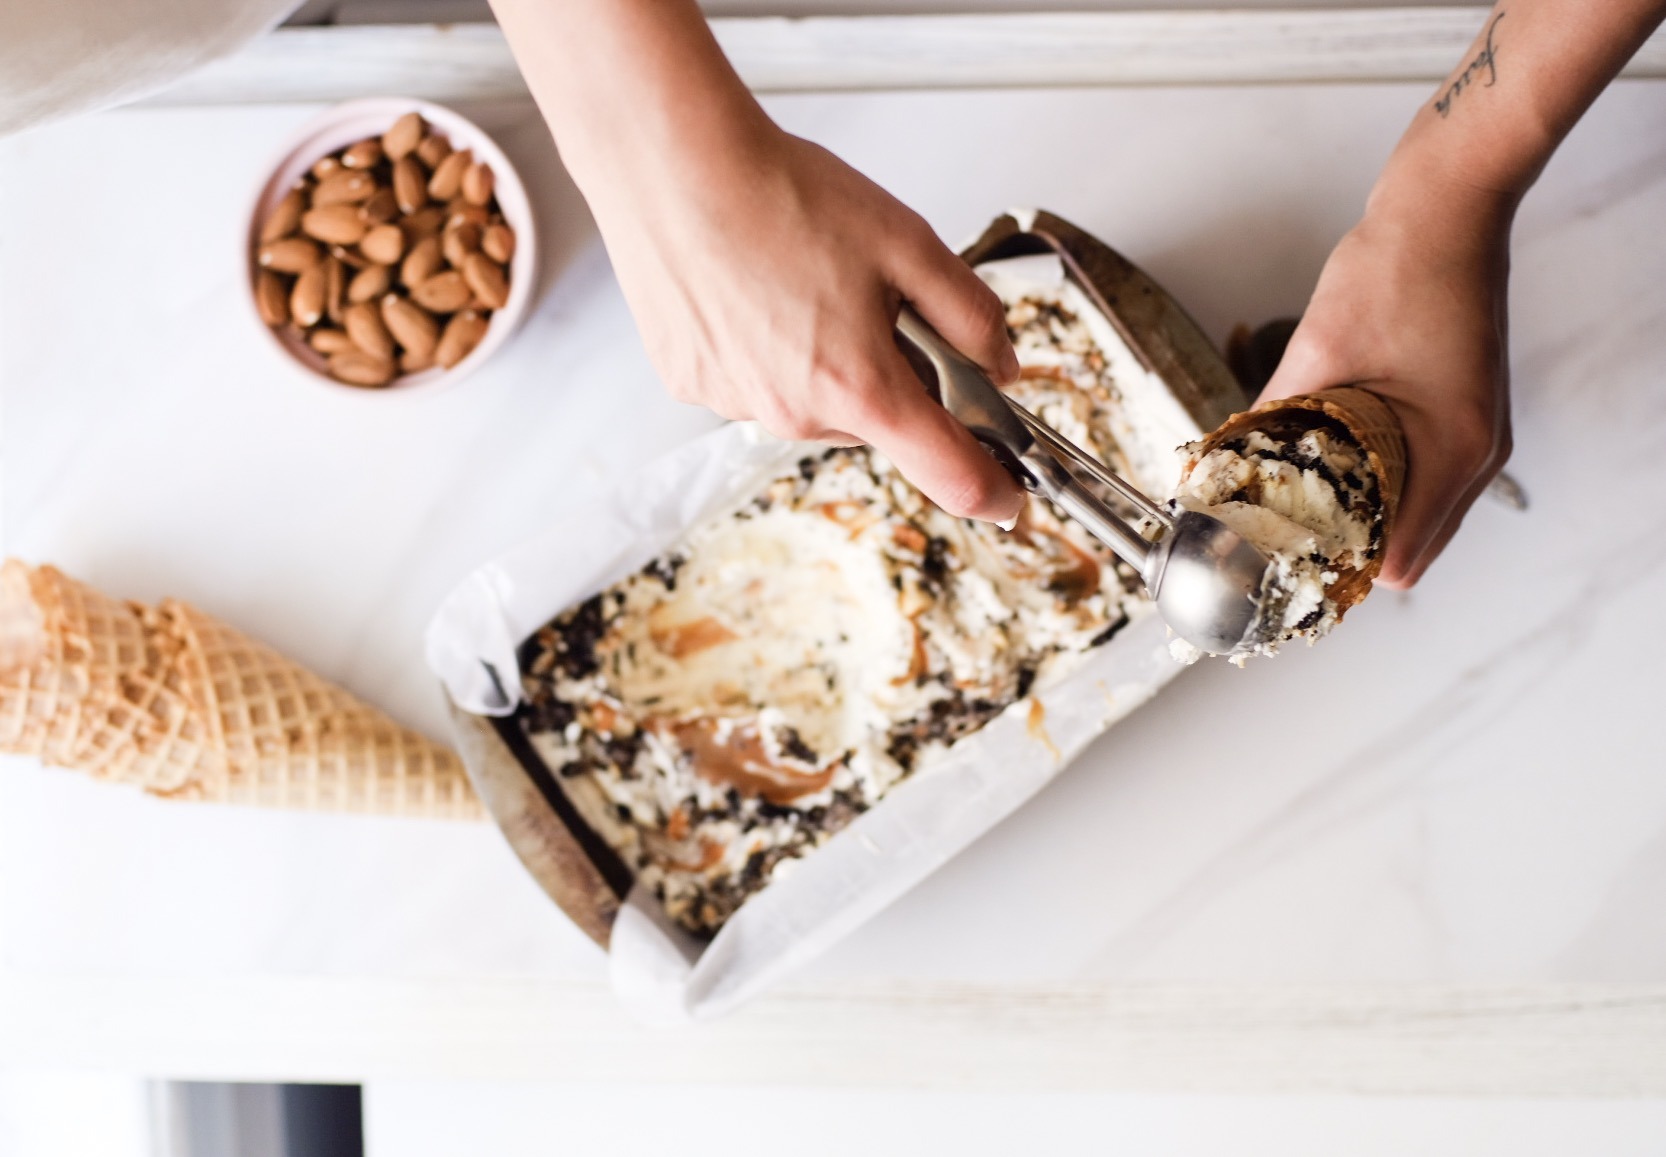 Lifestyle Blogger Chocolate and Lace shares her recipe for Oreo Salted Almond Caramel Swirl Homemade Ice Cream.